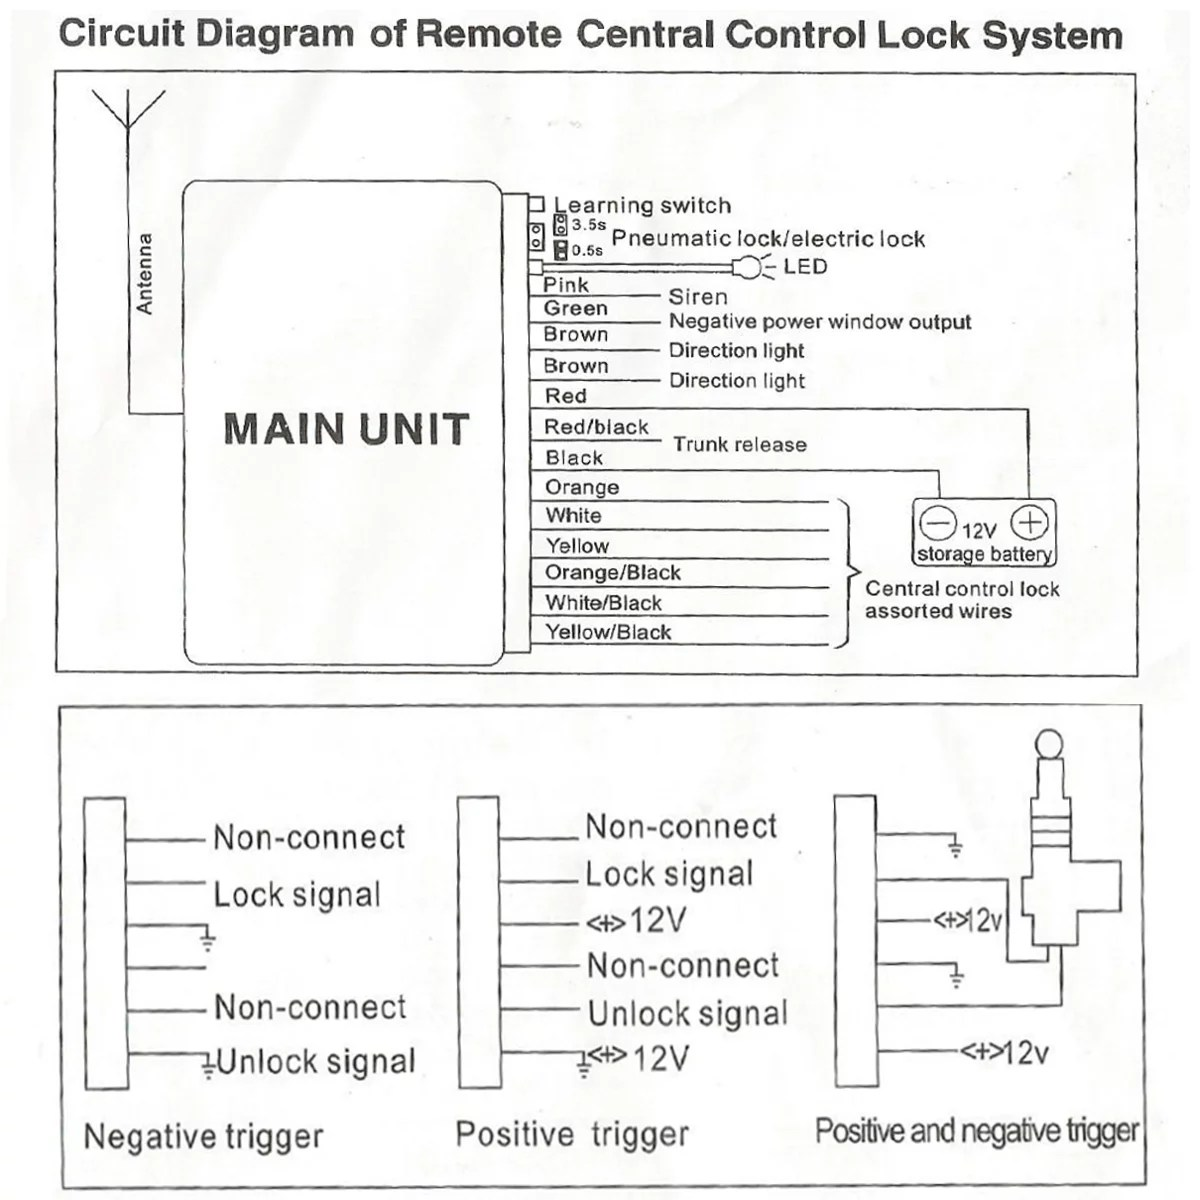 small resolution of main control unit 2x remotes instructions wiring diagram wiring wiring low voltage under cabinet lighting remote central locking wiring diagram